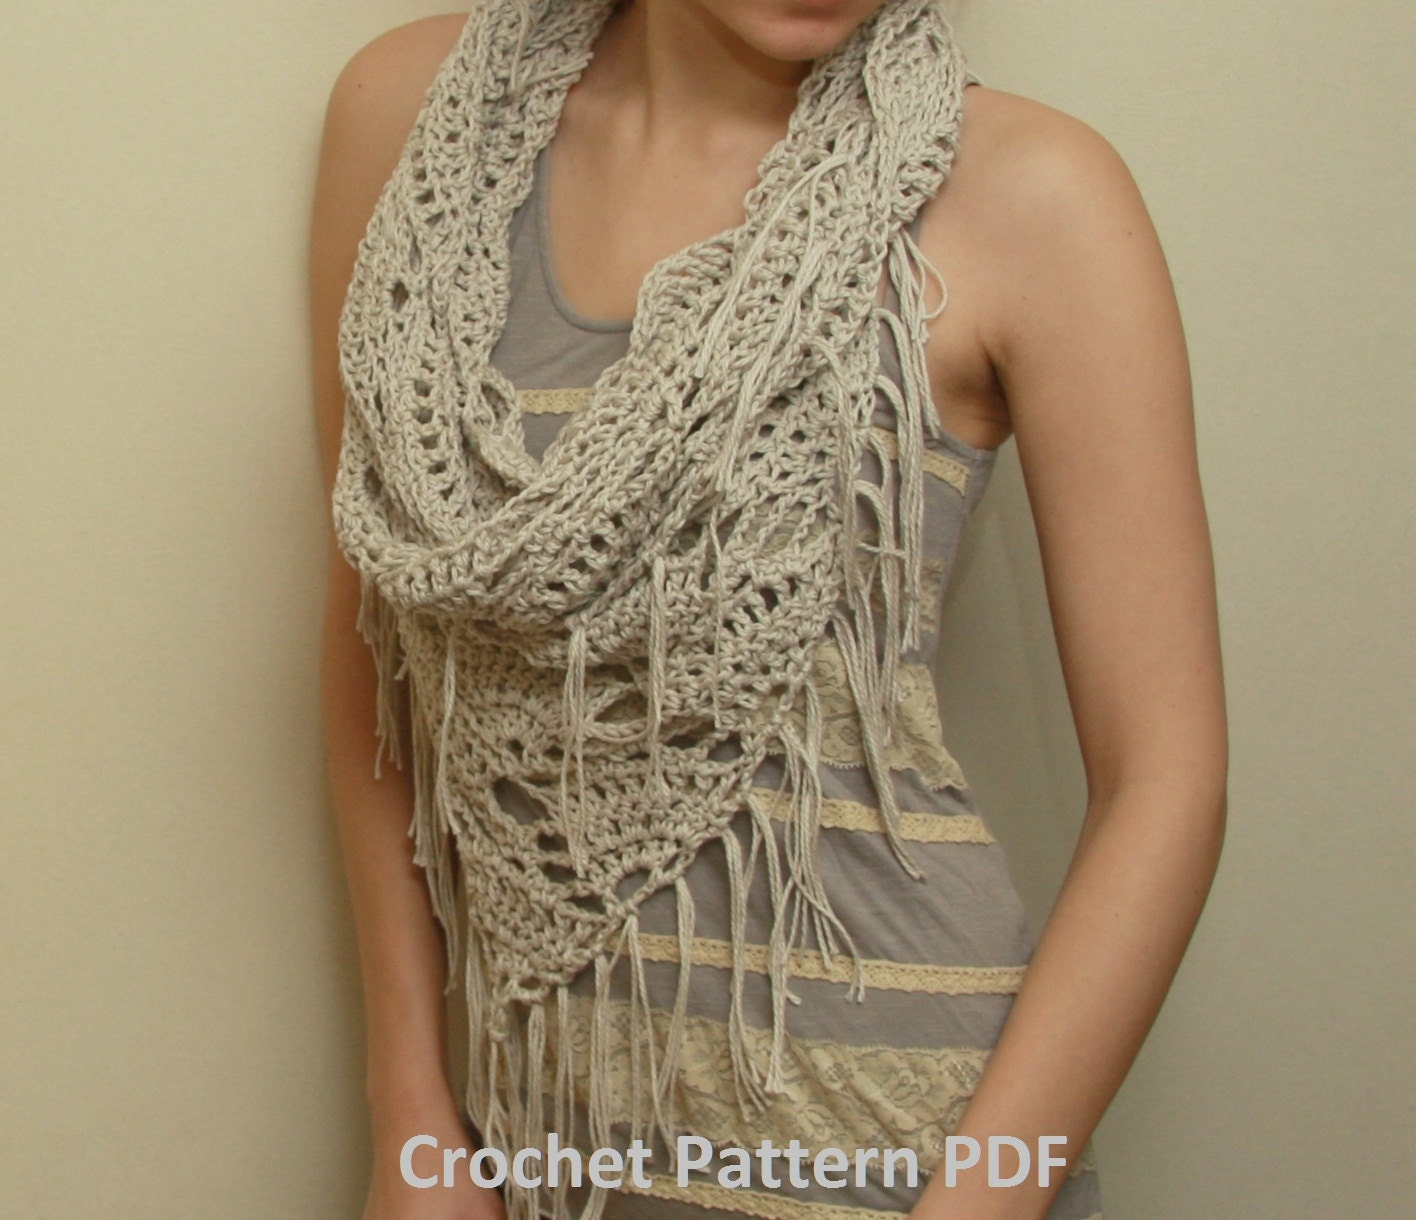 Free Crochet Pattern For Infinity Scarf With Fringe : Crochet Pattern PDF Triangle Cowl Electronic by ElevenHandmade